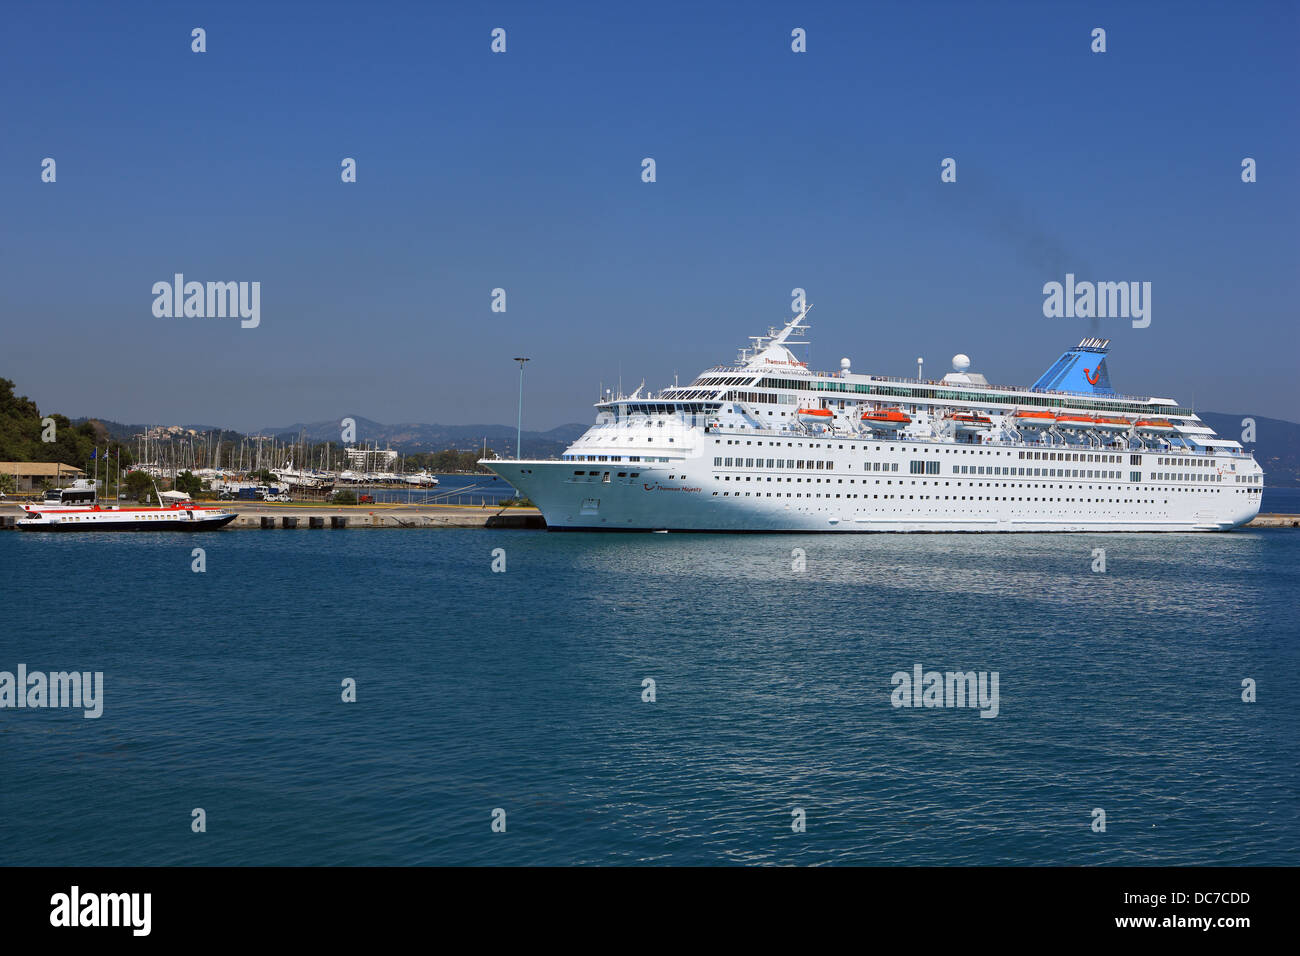 Cruise ship Thomsons Majesty docked in the port at Corfu Town in Greece - Stock Image